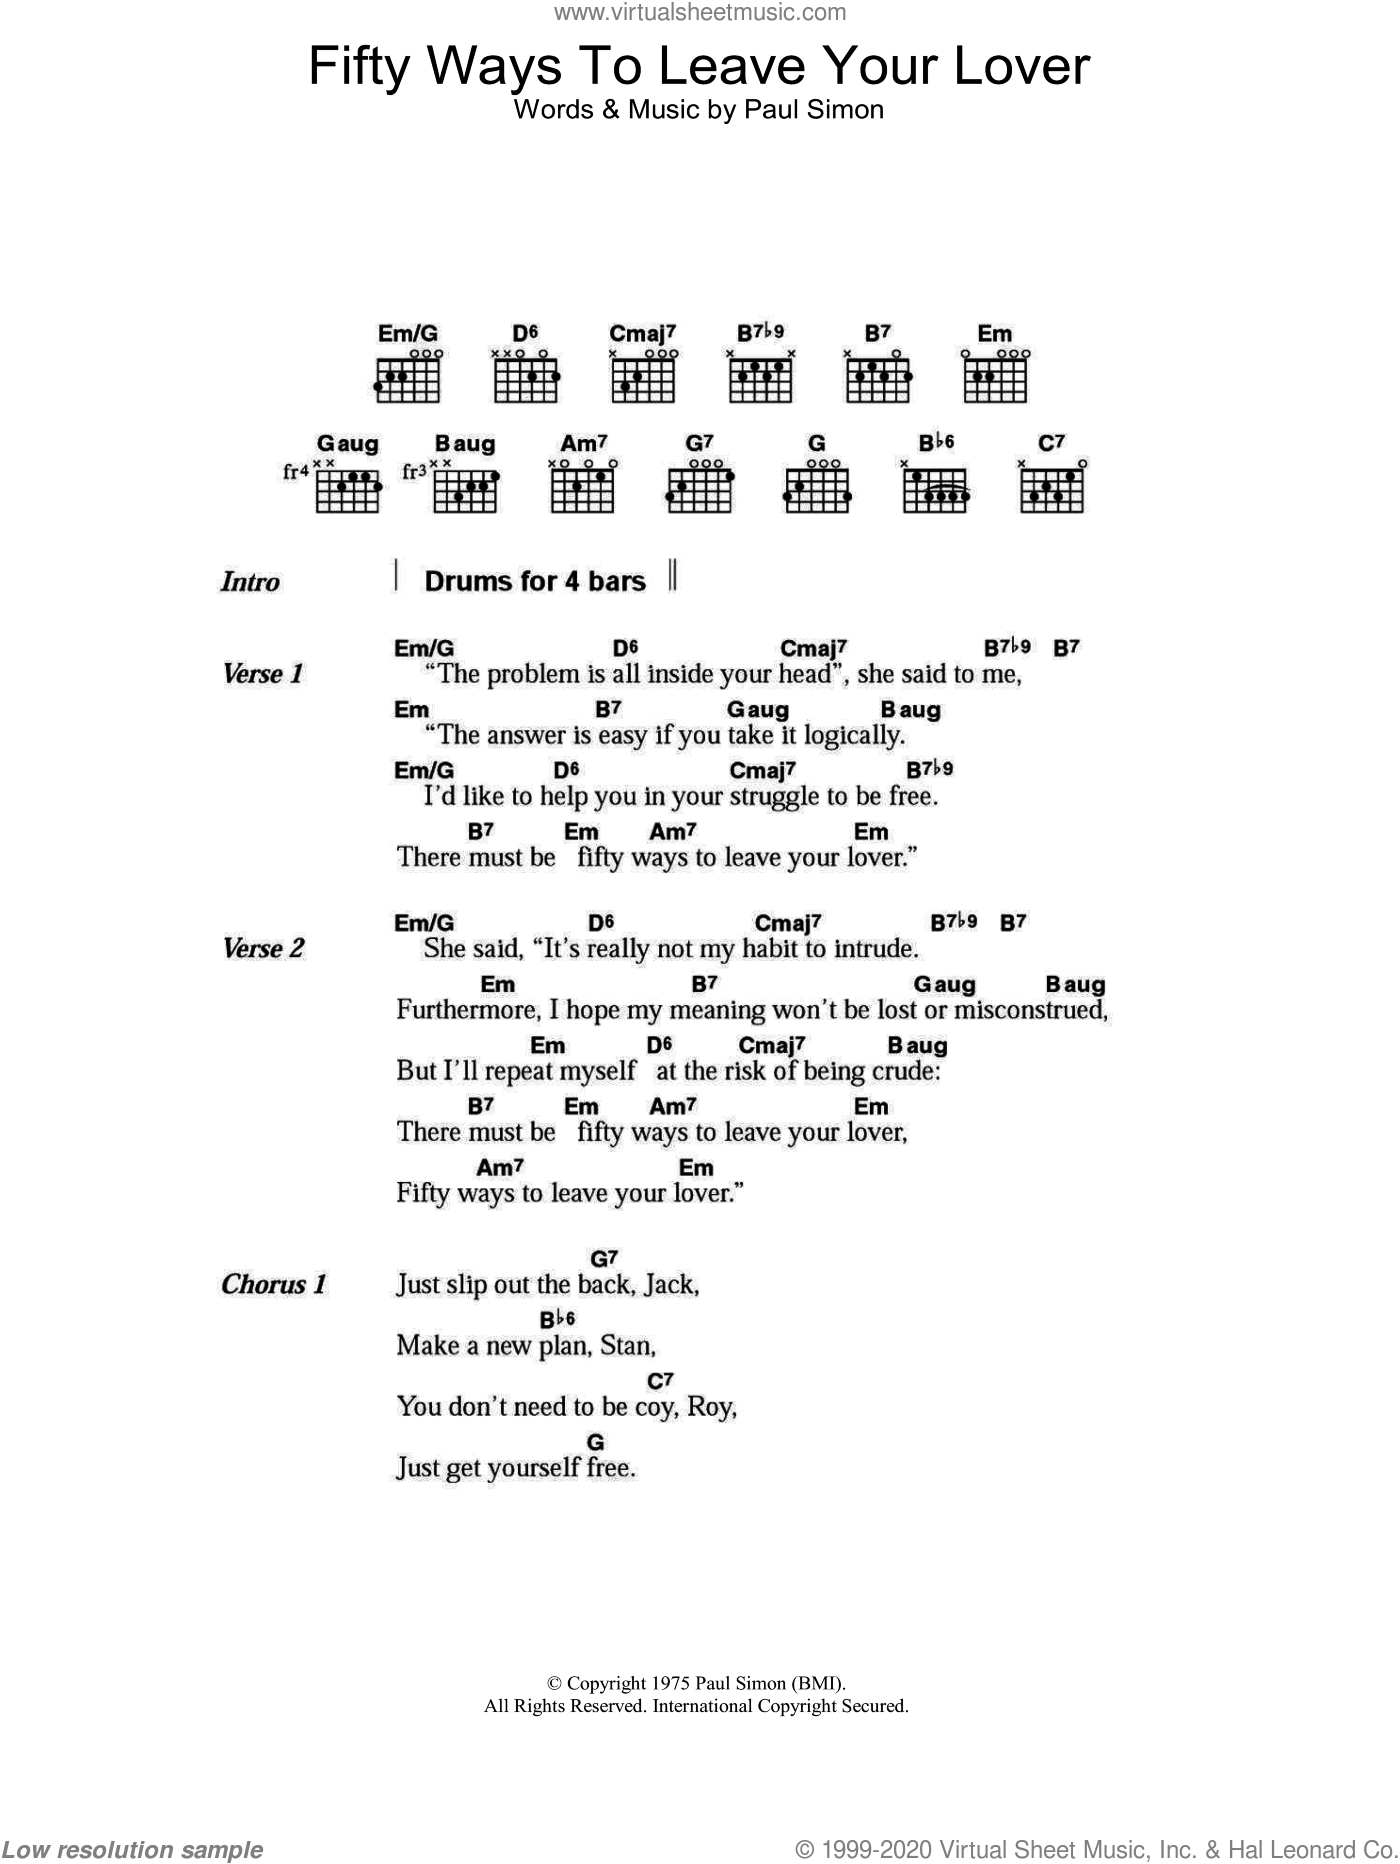 Fifty Ways To Leave Your Lover sheet music for guitar (chords) by Paul Simon, intermediate guitar (chords). Score Image Preview.